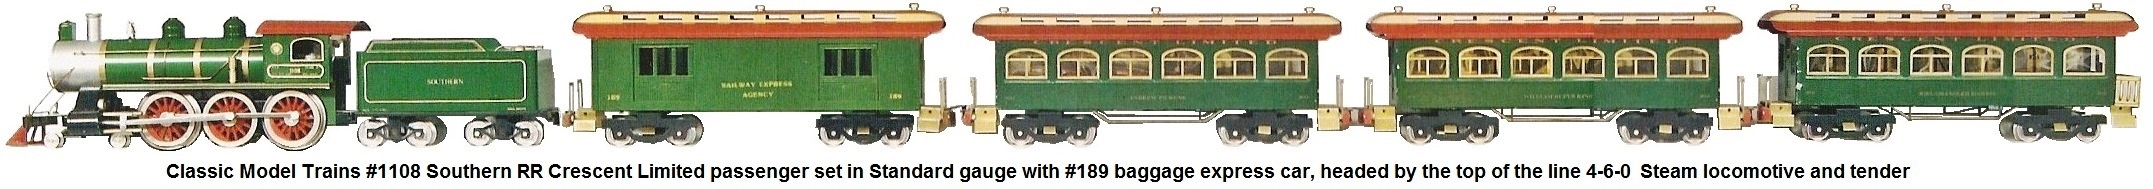 Classic Model Trains Standard gauge #1108 4-6-0 Mogul locomotive and tender Southern RR Crescent Limited set with #189 Baggage Express car, 2 coaches and an observation car circa 1977